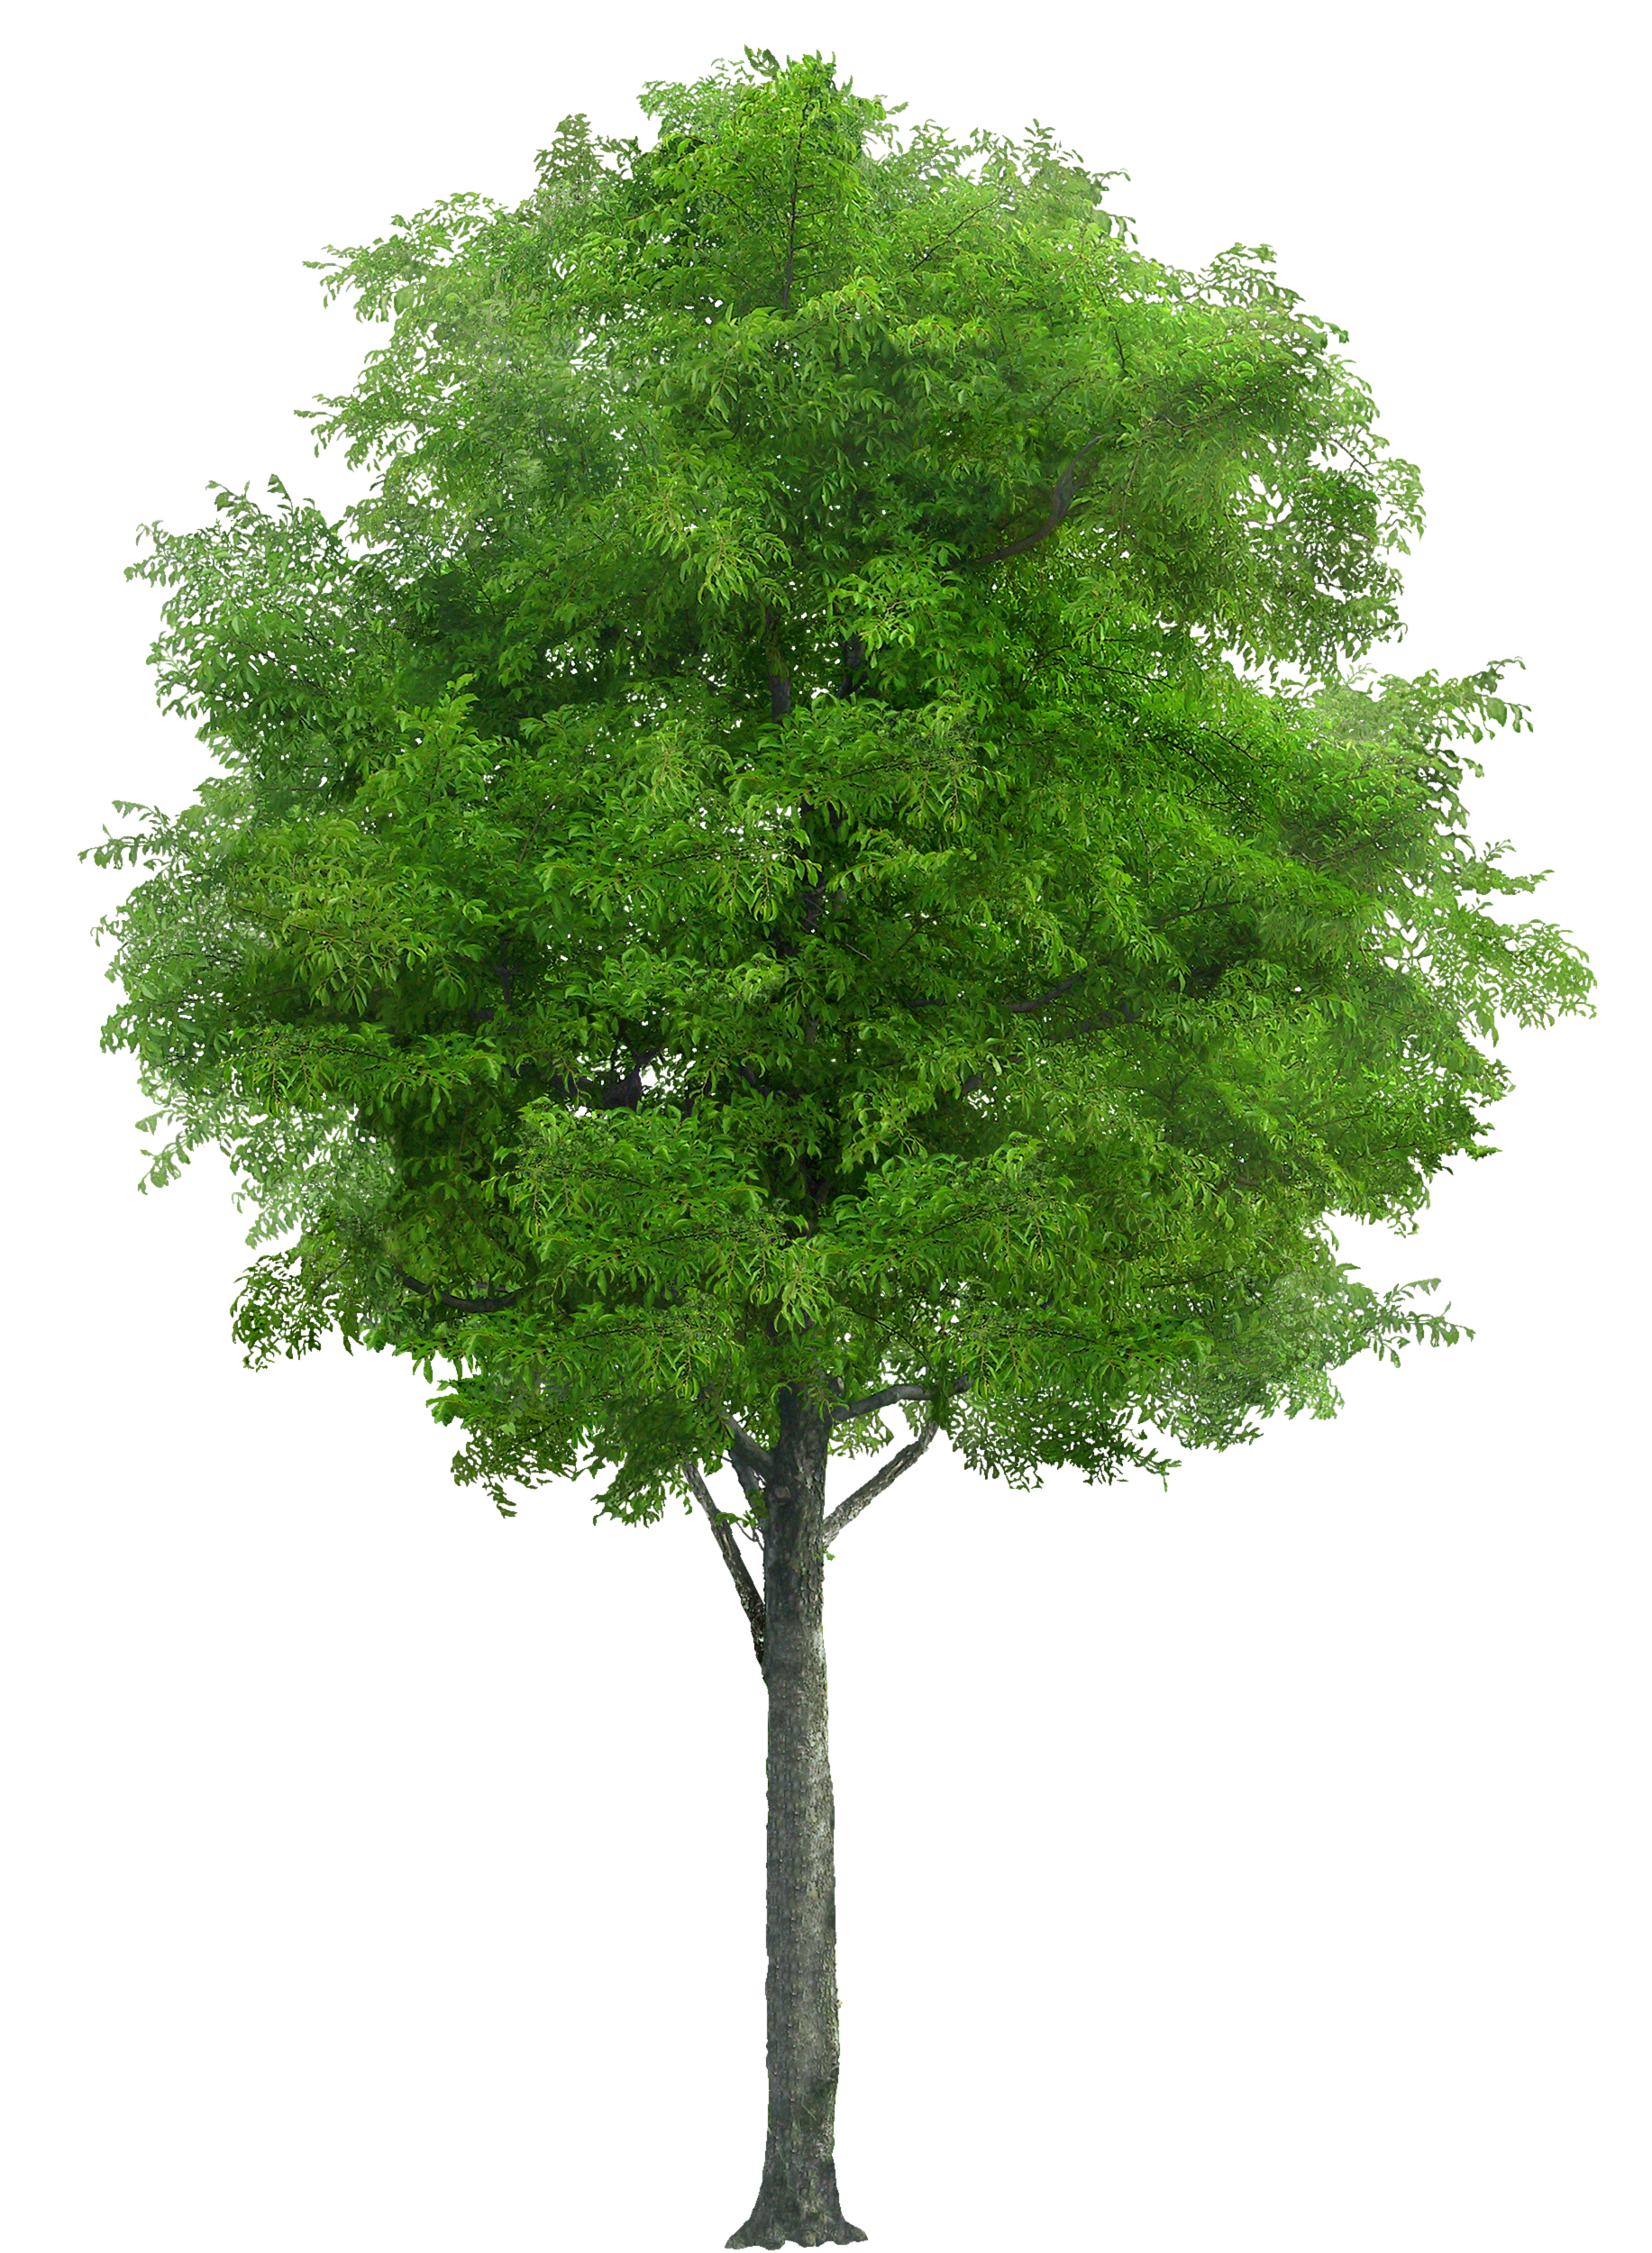 20 Tree Png Images for archit